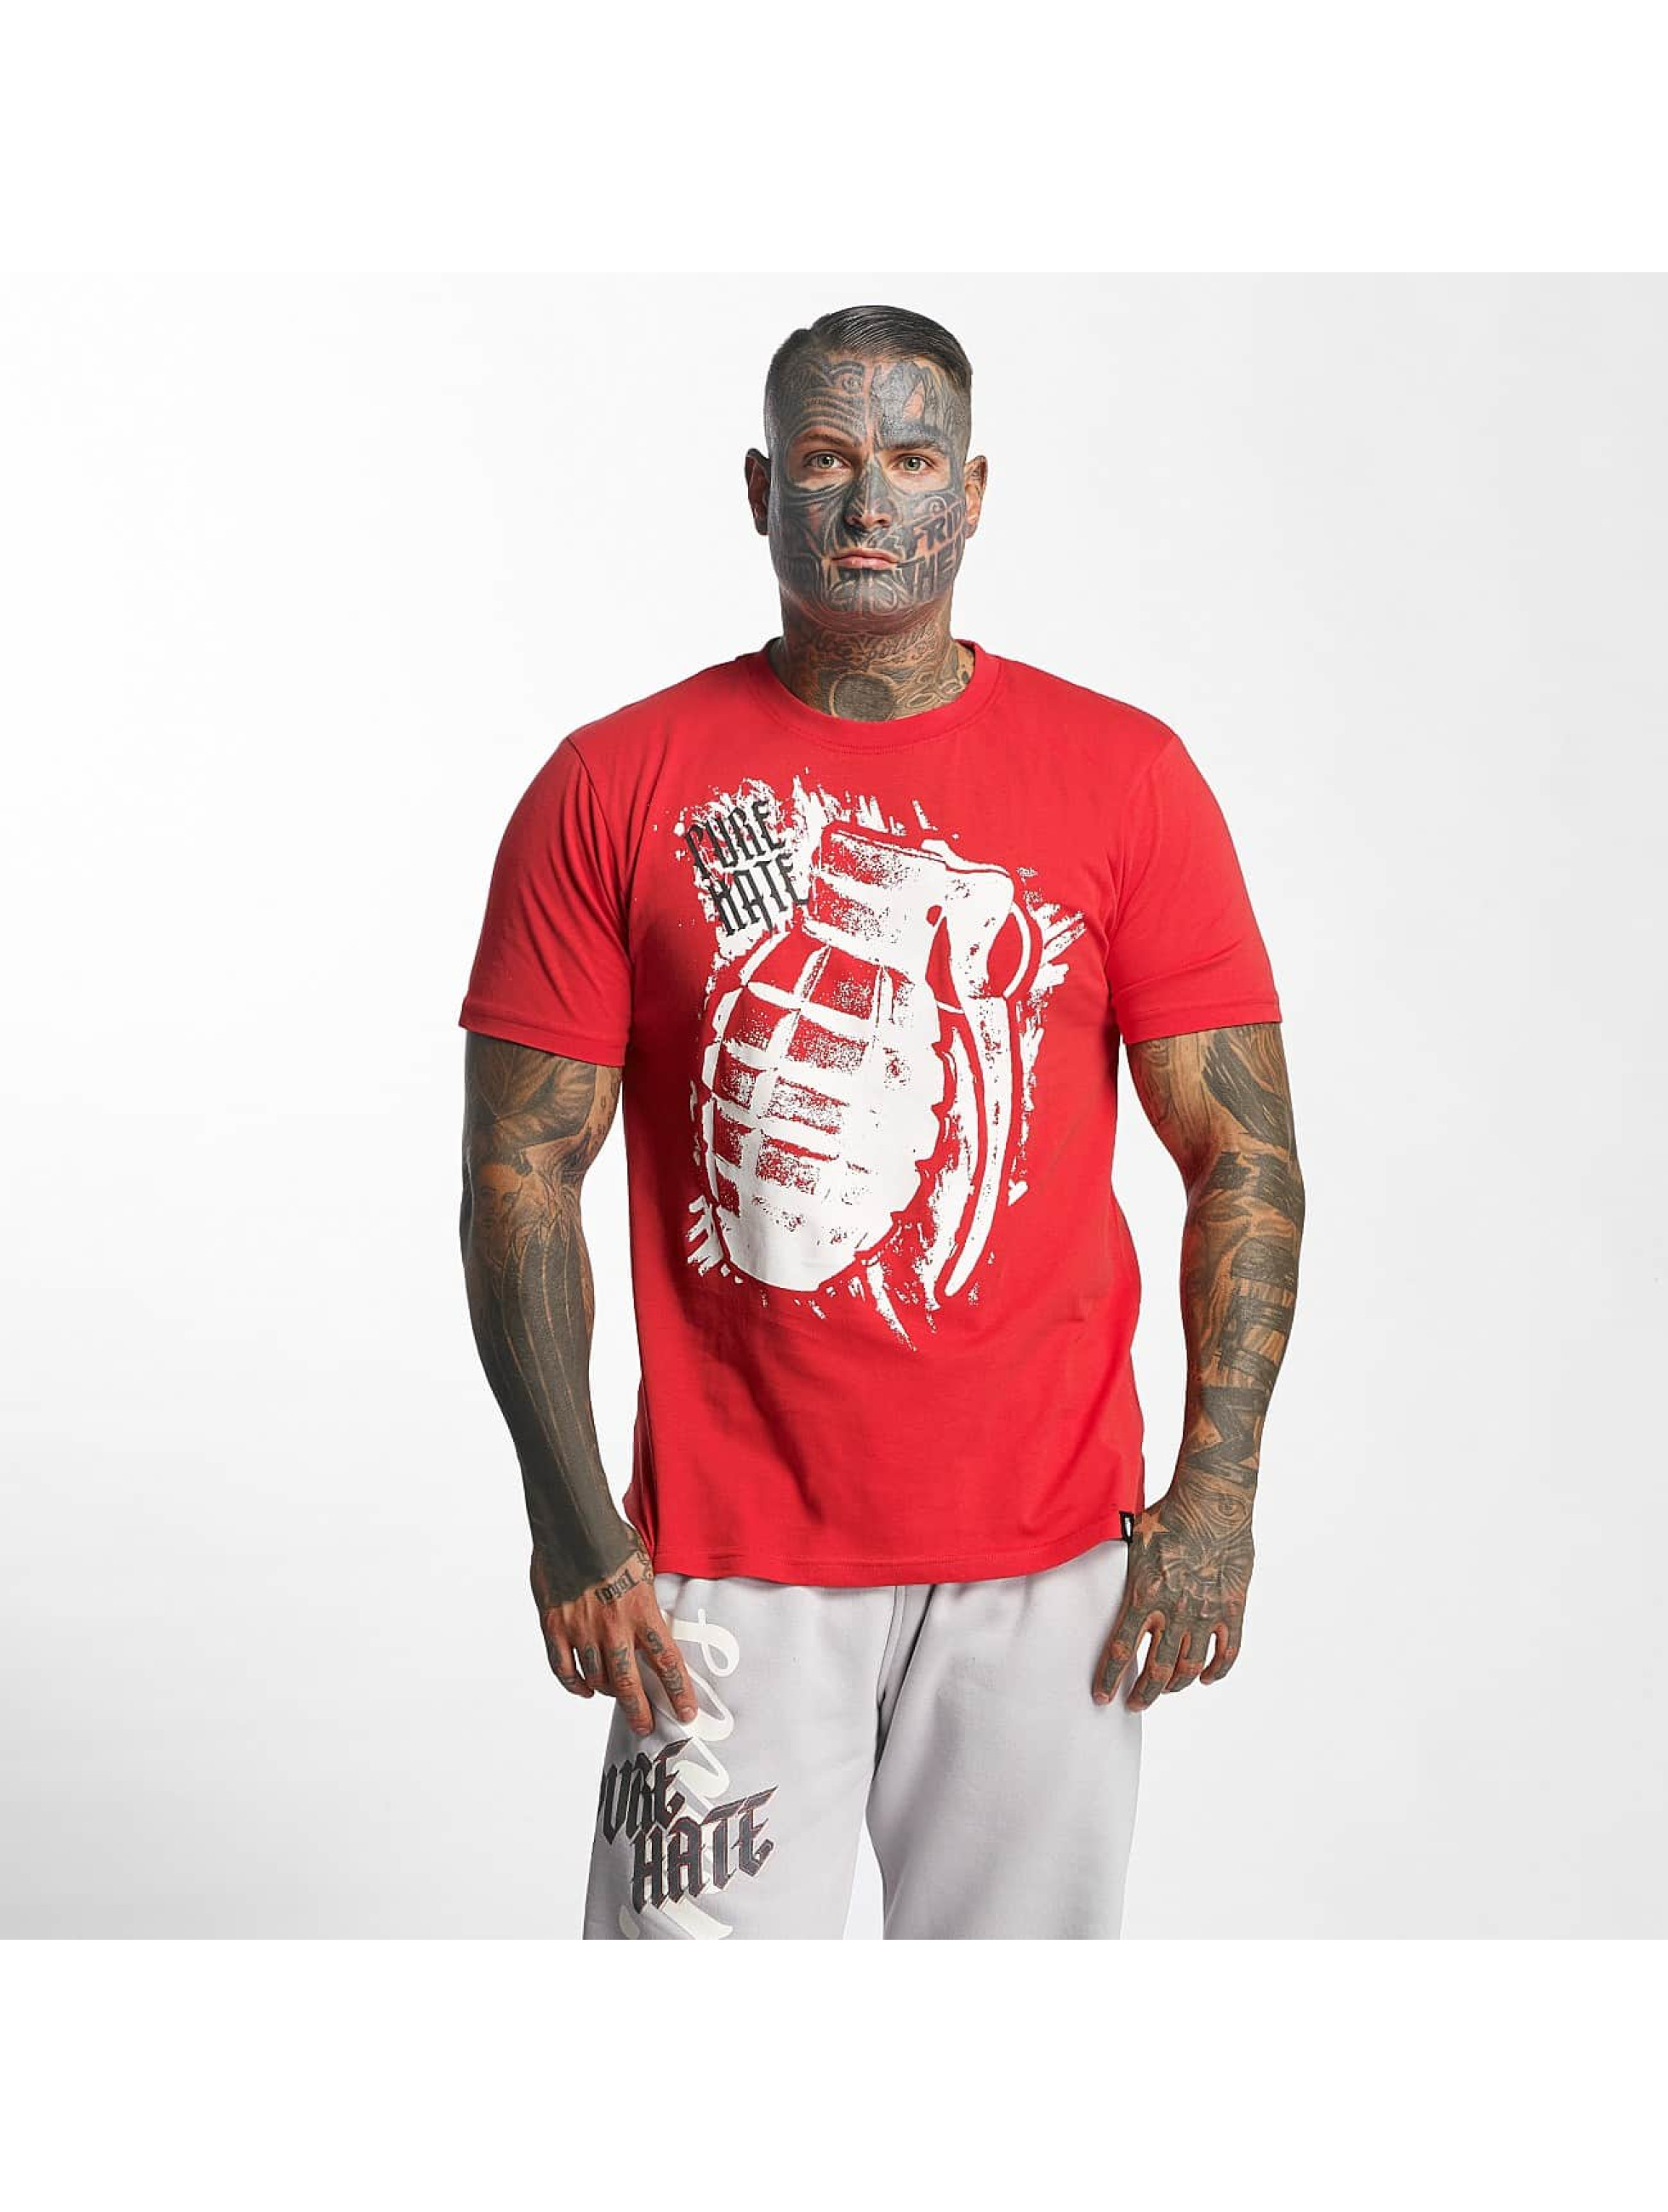 Pure Hate T-Shirt Hand Grenade red